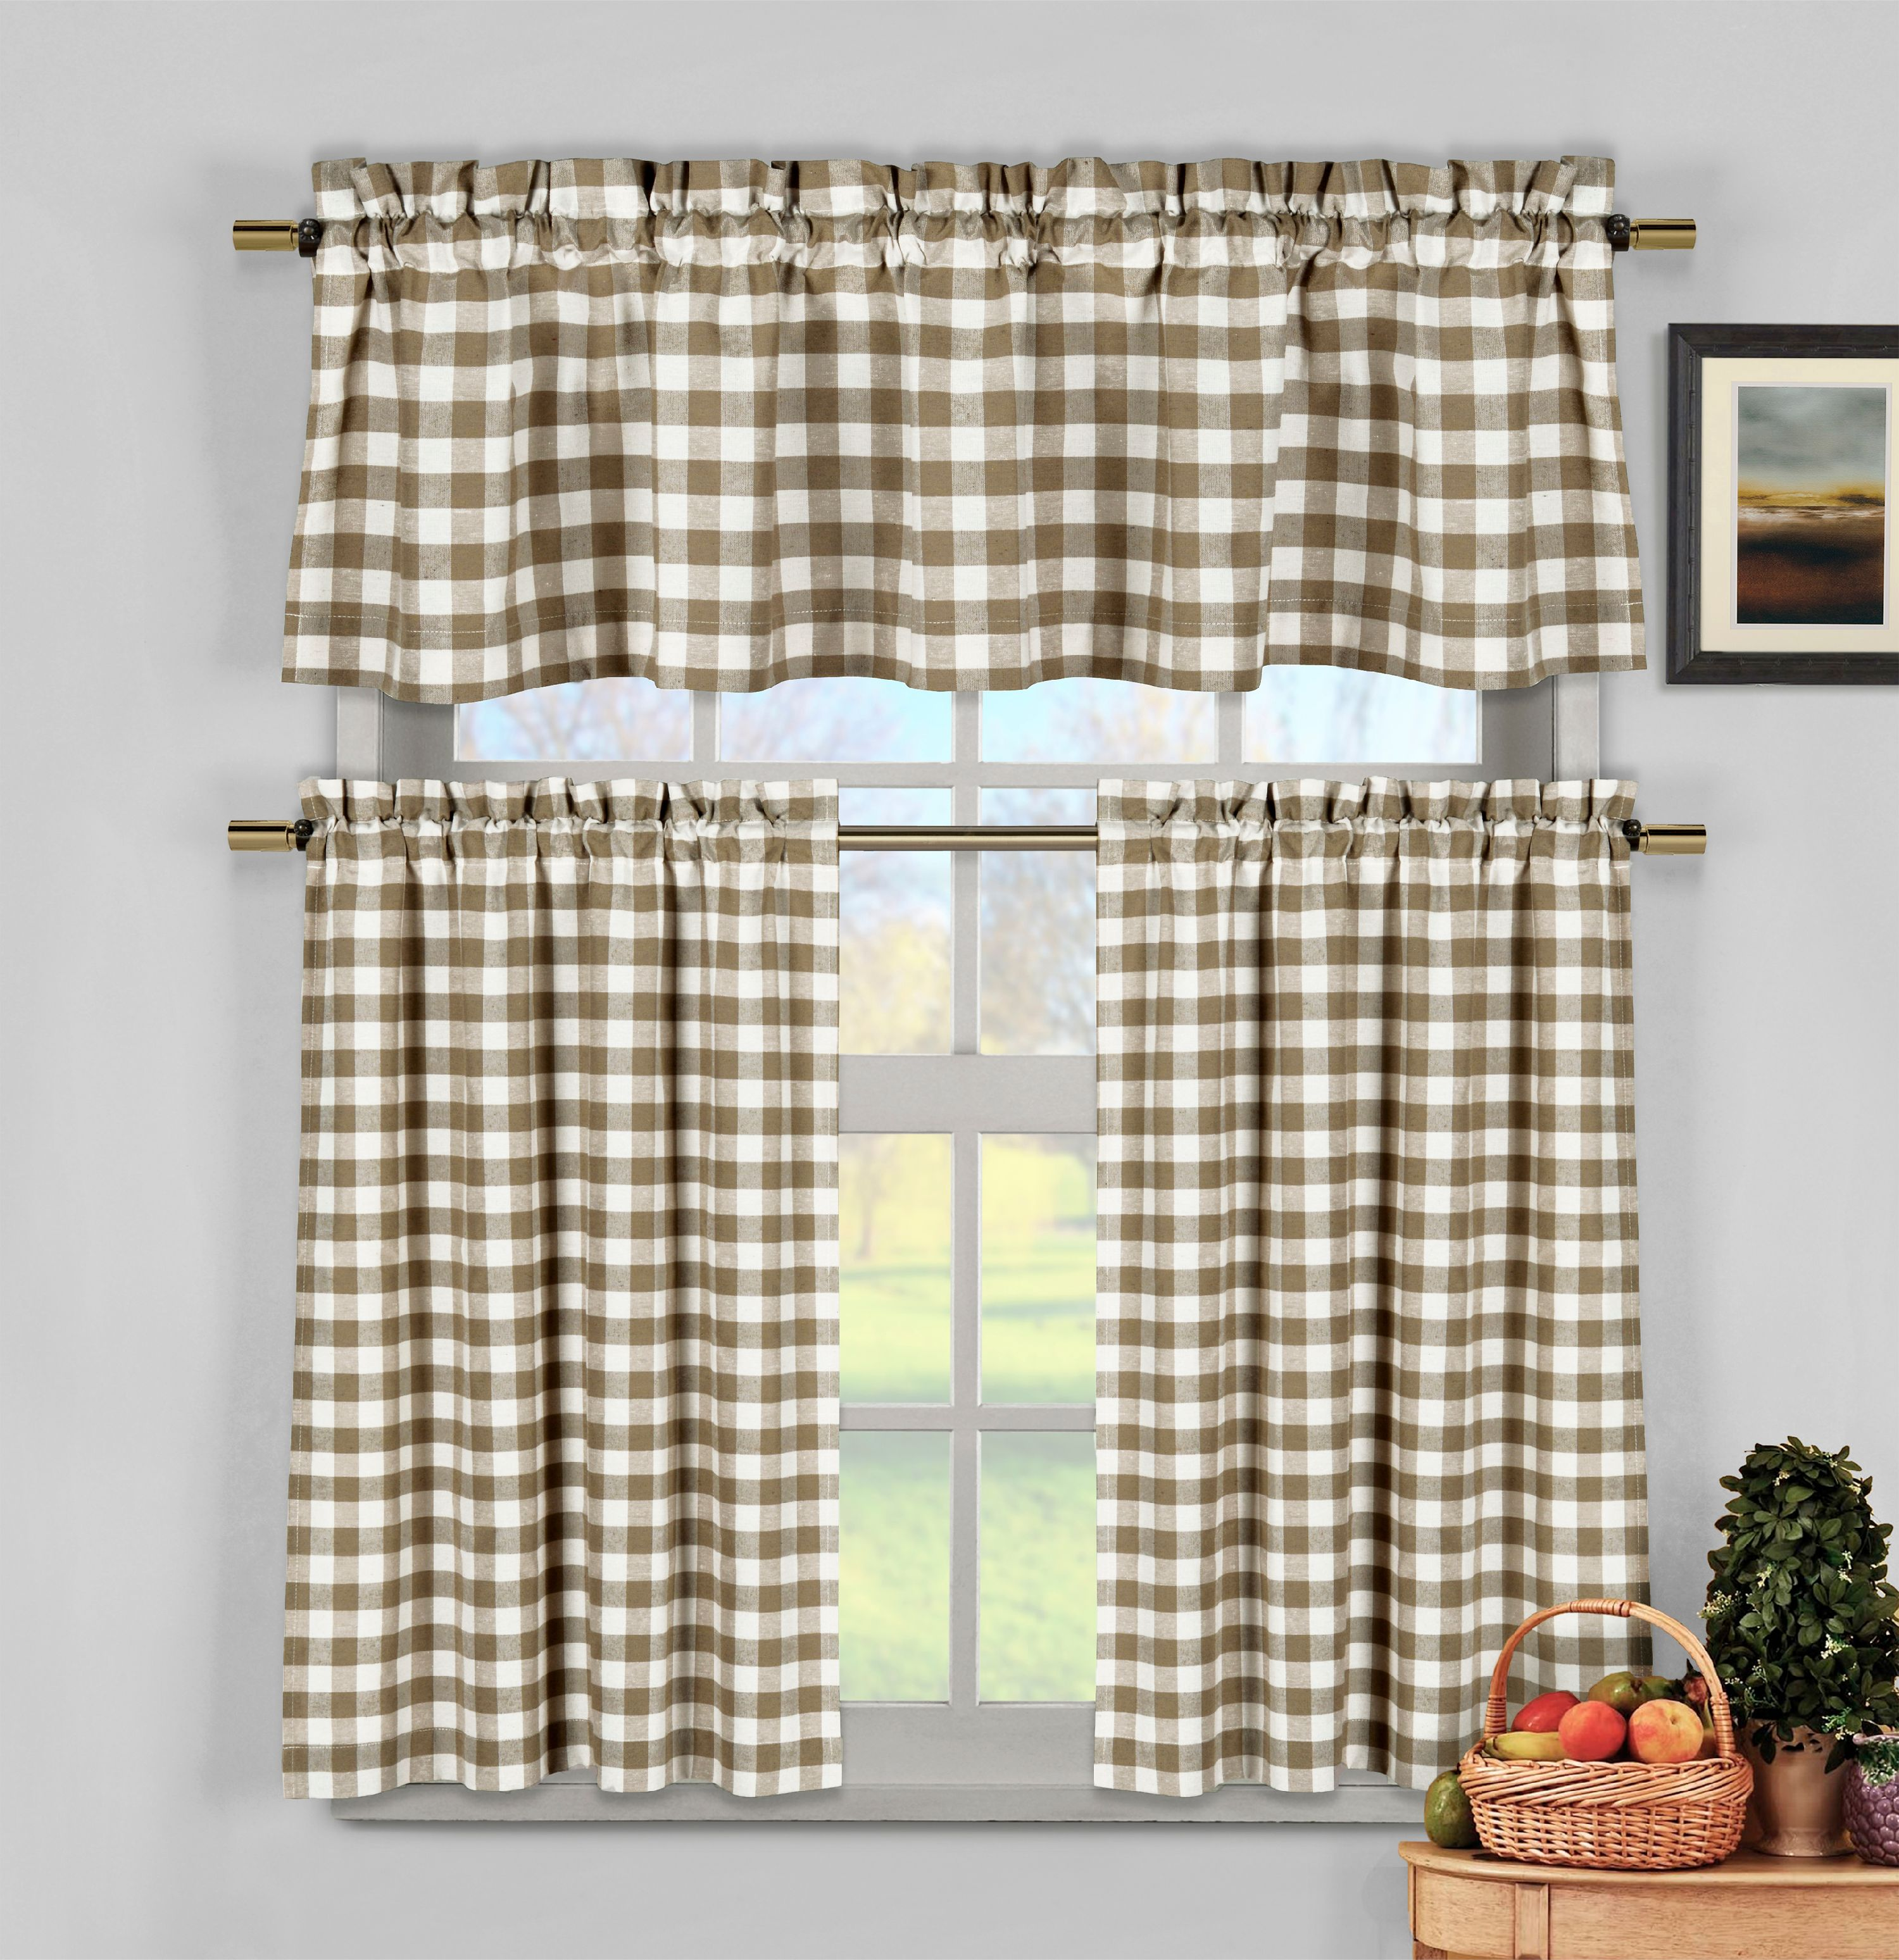 Taupe 3 Piece Gingham Check Kitchen Window Curtain Set: Plaid, Cotton Rich, 1 Valance, 2 Tier Panels